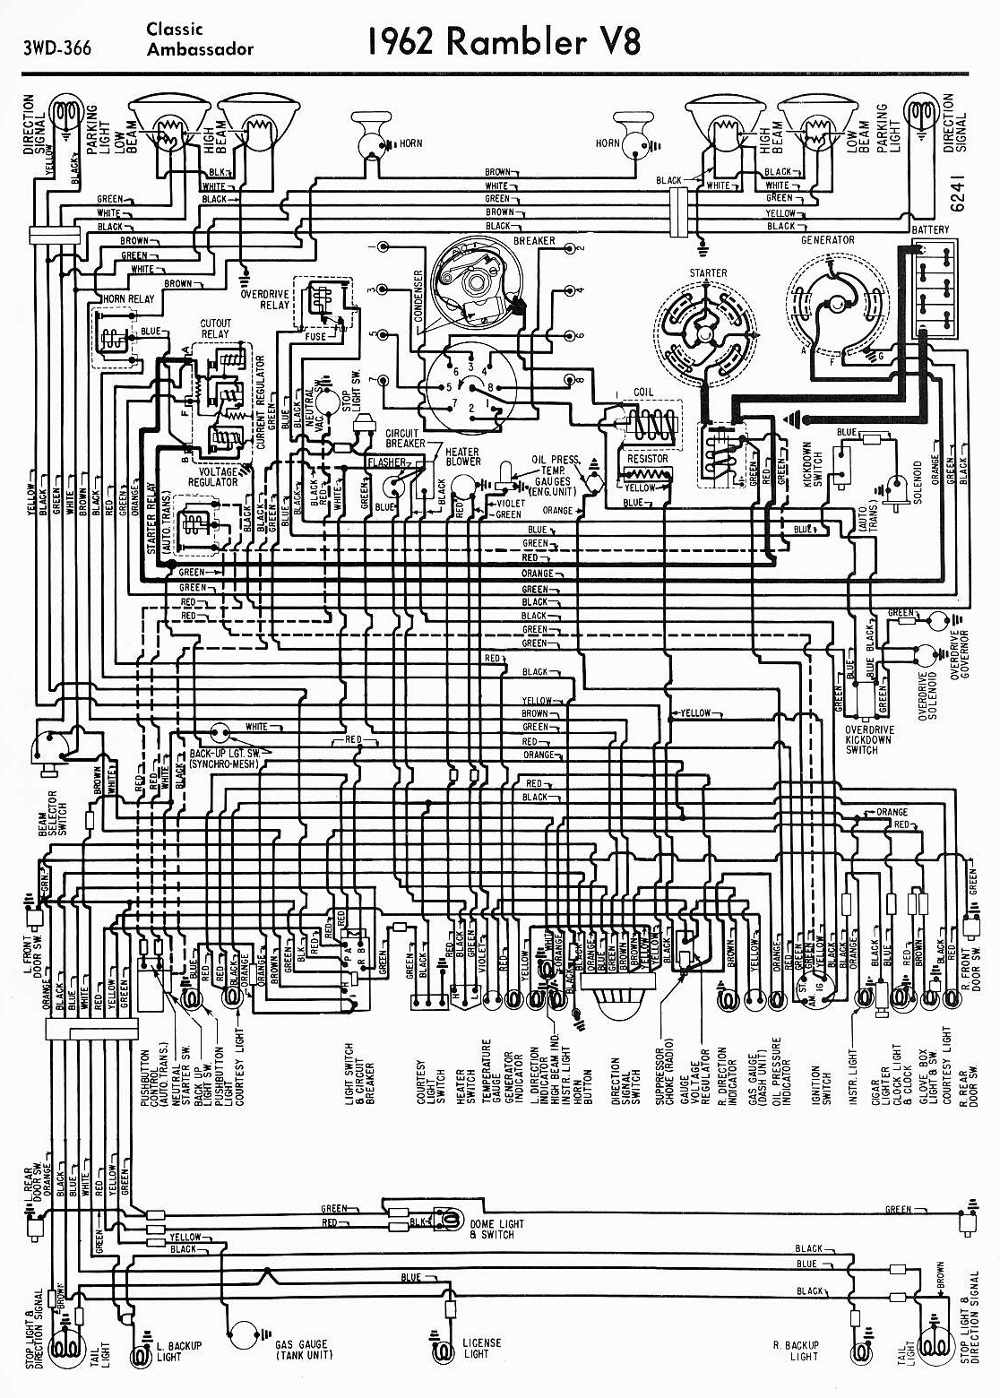 hight resolution of amc car manuals wiring diagrams pdf fault codes 1973 amc ambassador 1973 amc wiring diagram